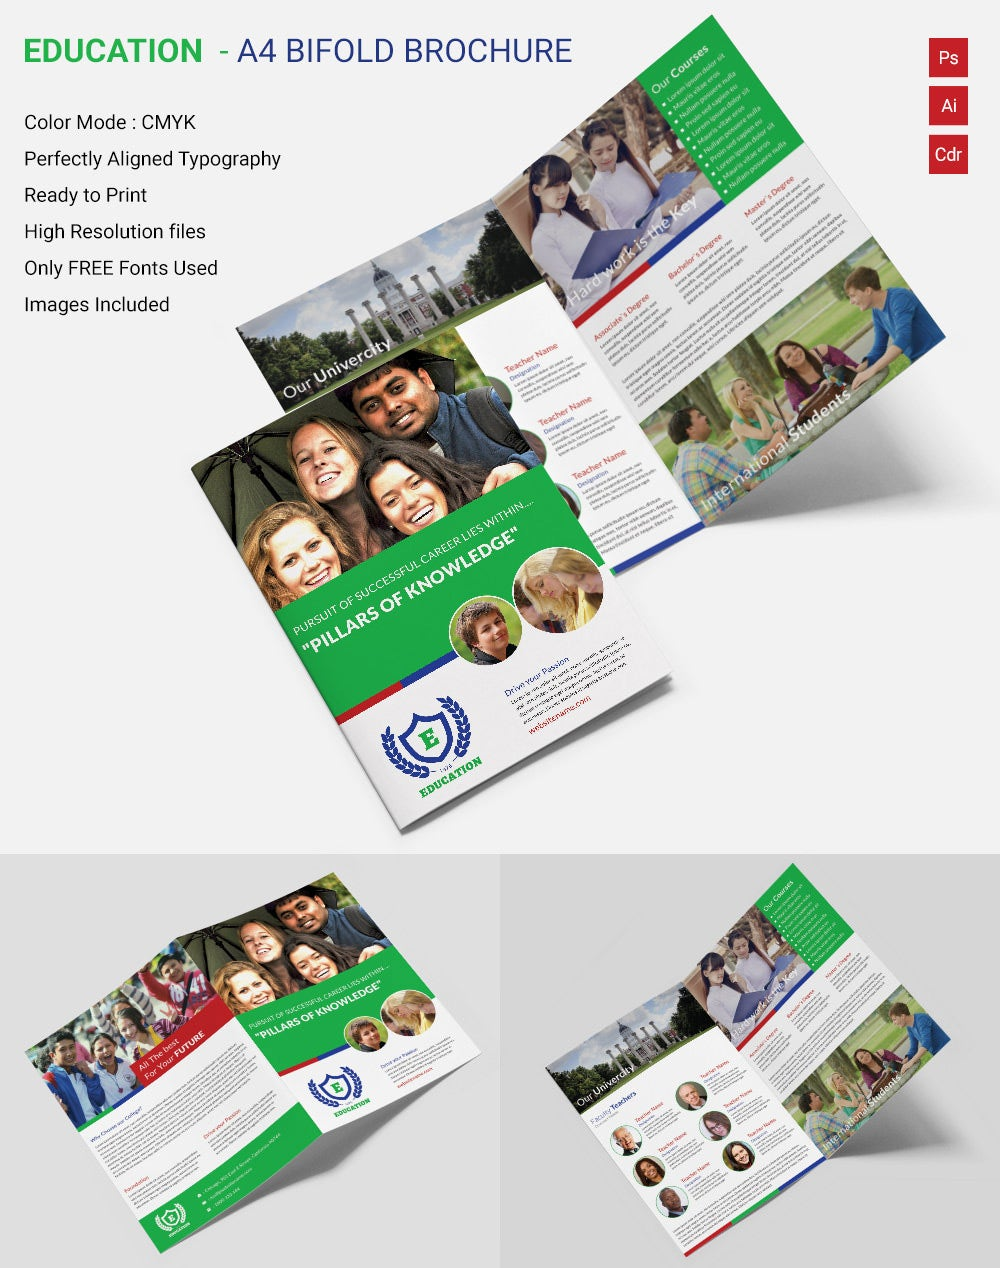 folding templates for brochures - education brochure template 43 free psd eps indesign